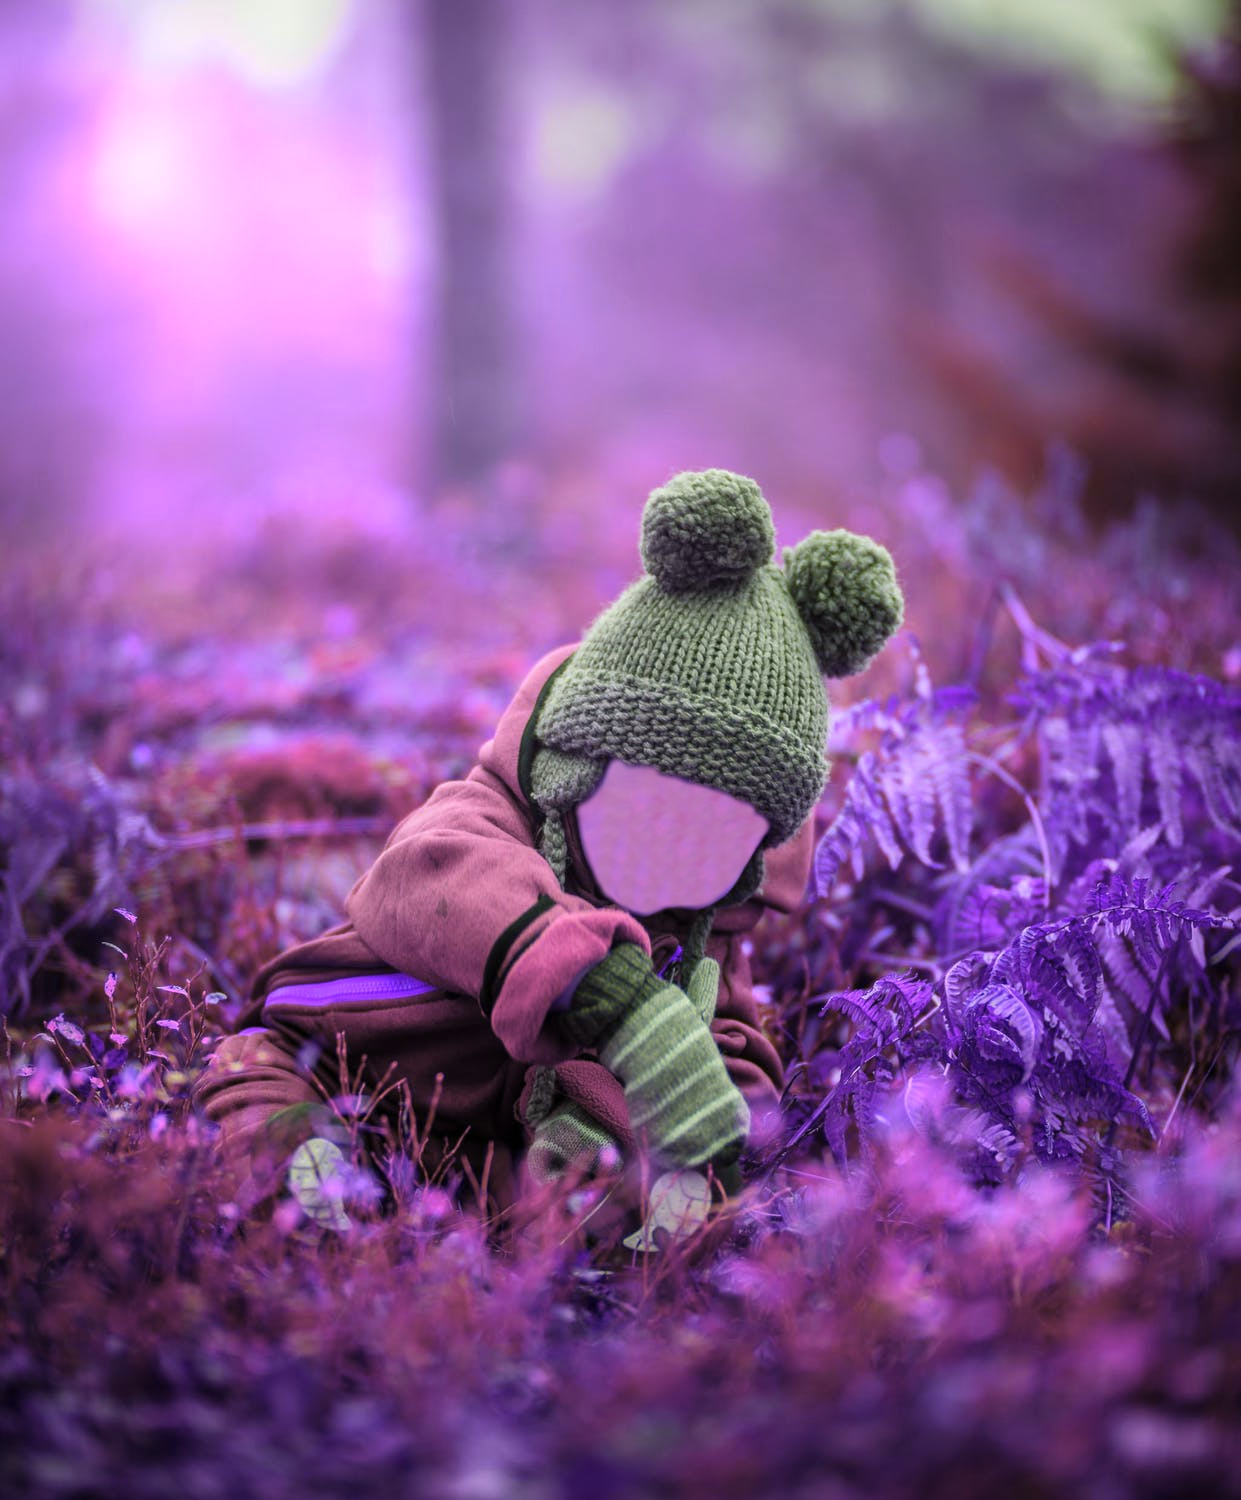 Background Images for Baby Photo Editing | Child Background Images HD